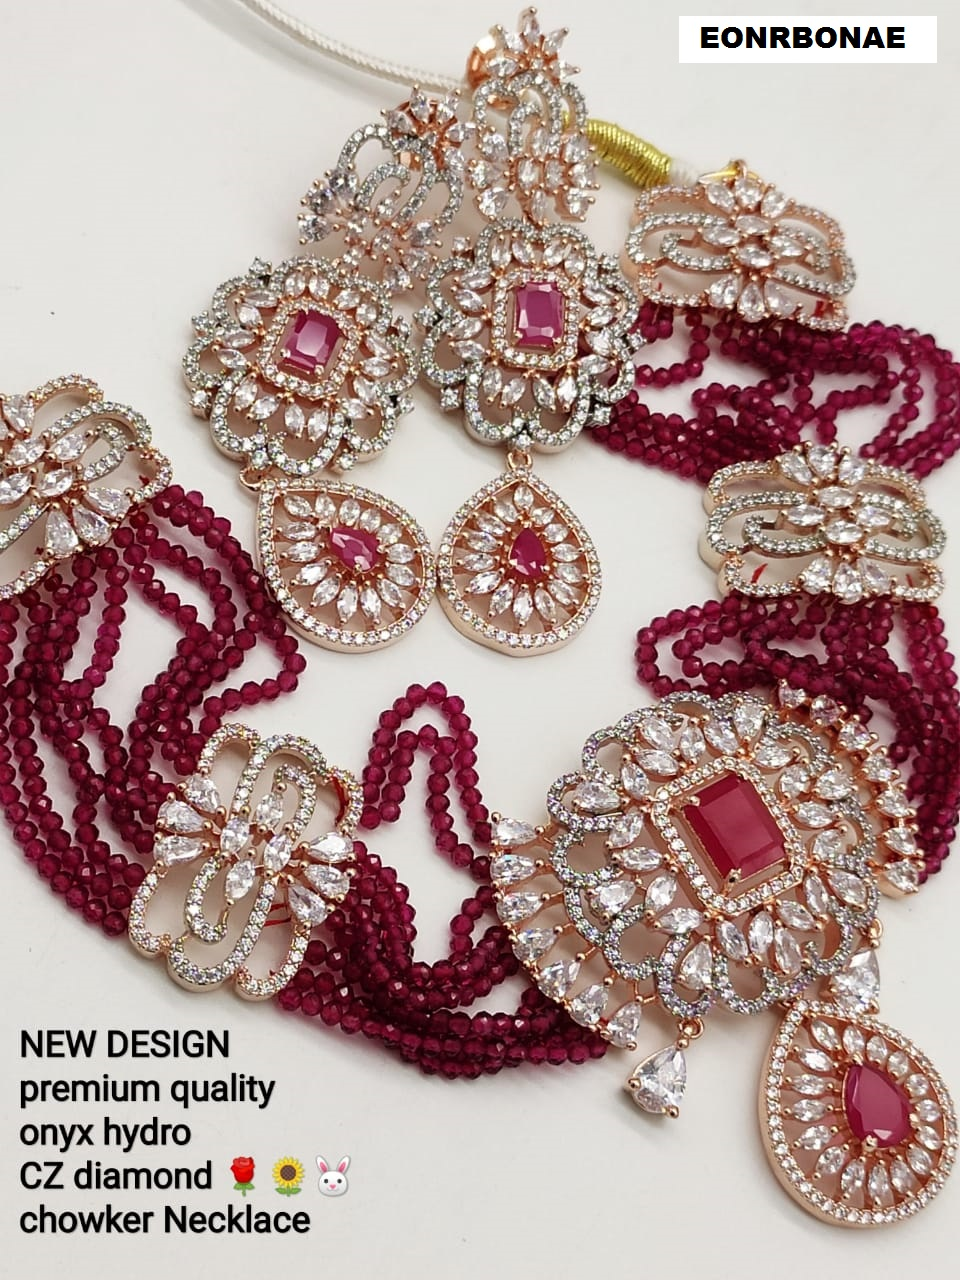 Imitation Jewelry Manufacturers Suppliers From Kolkata